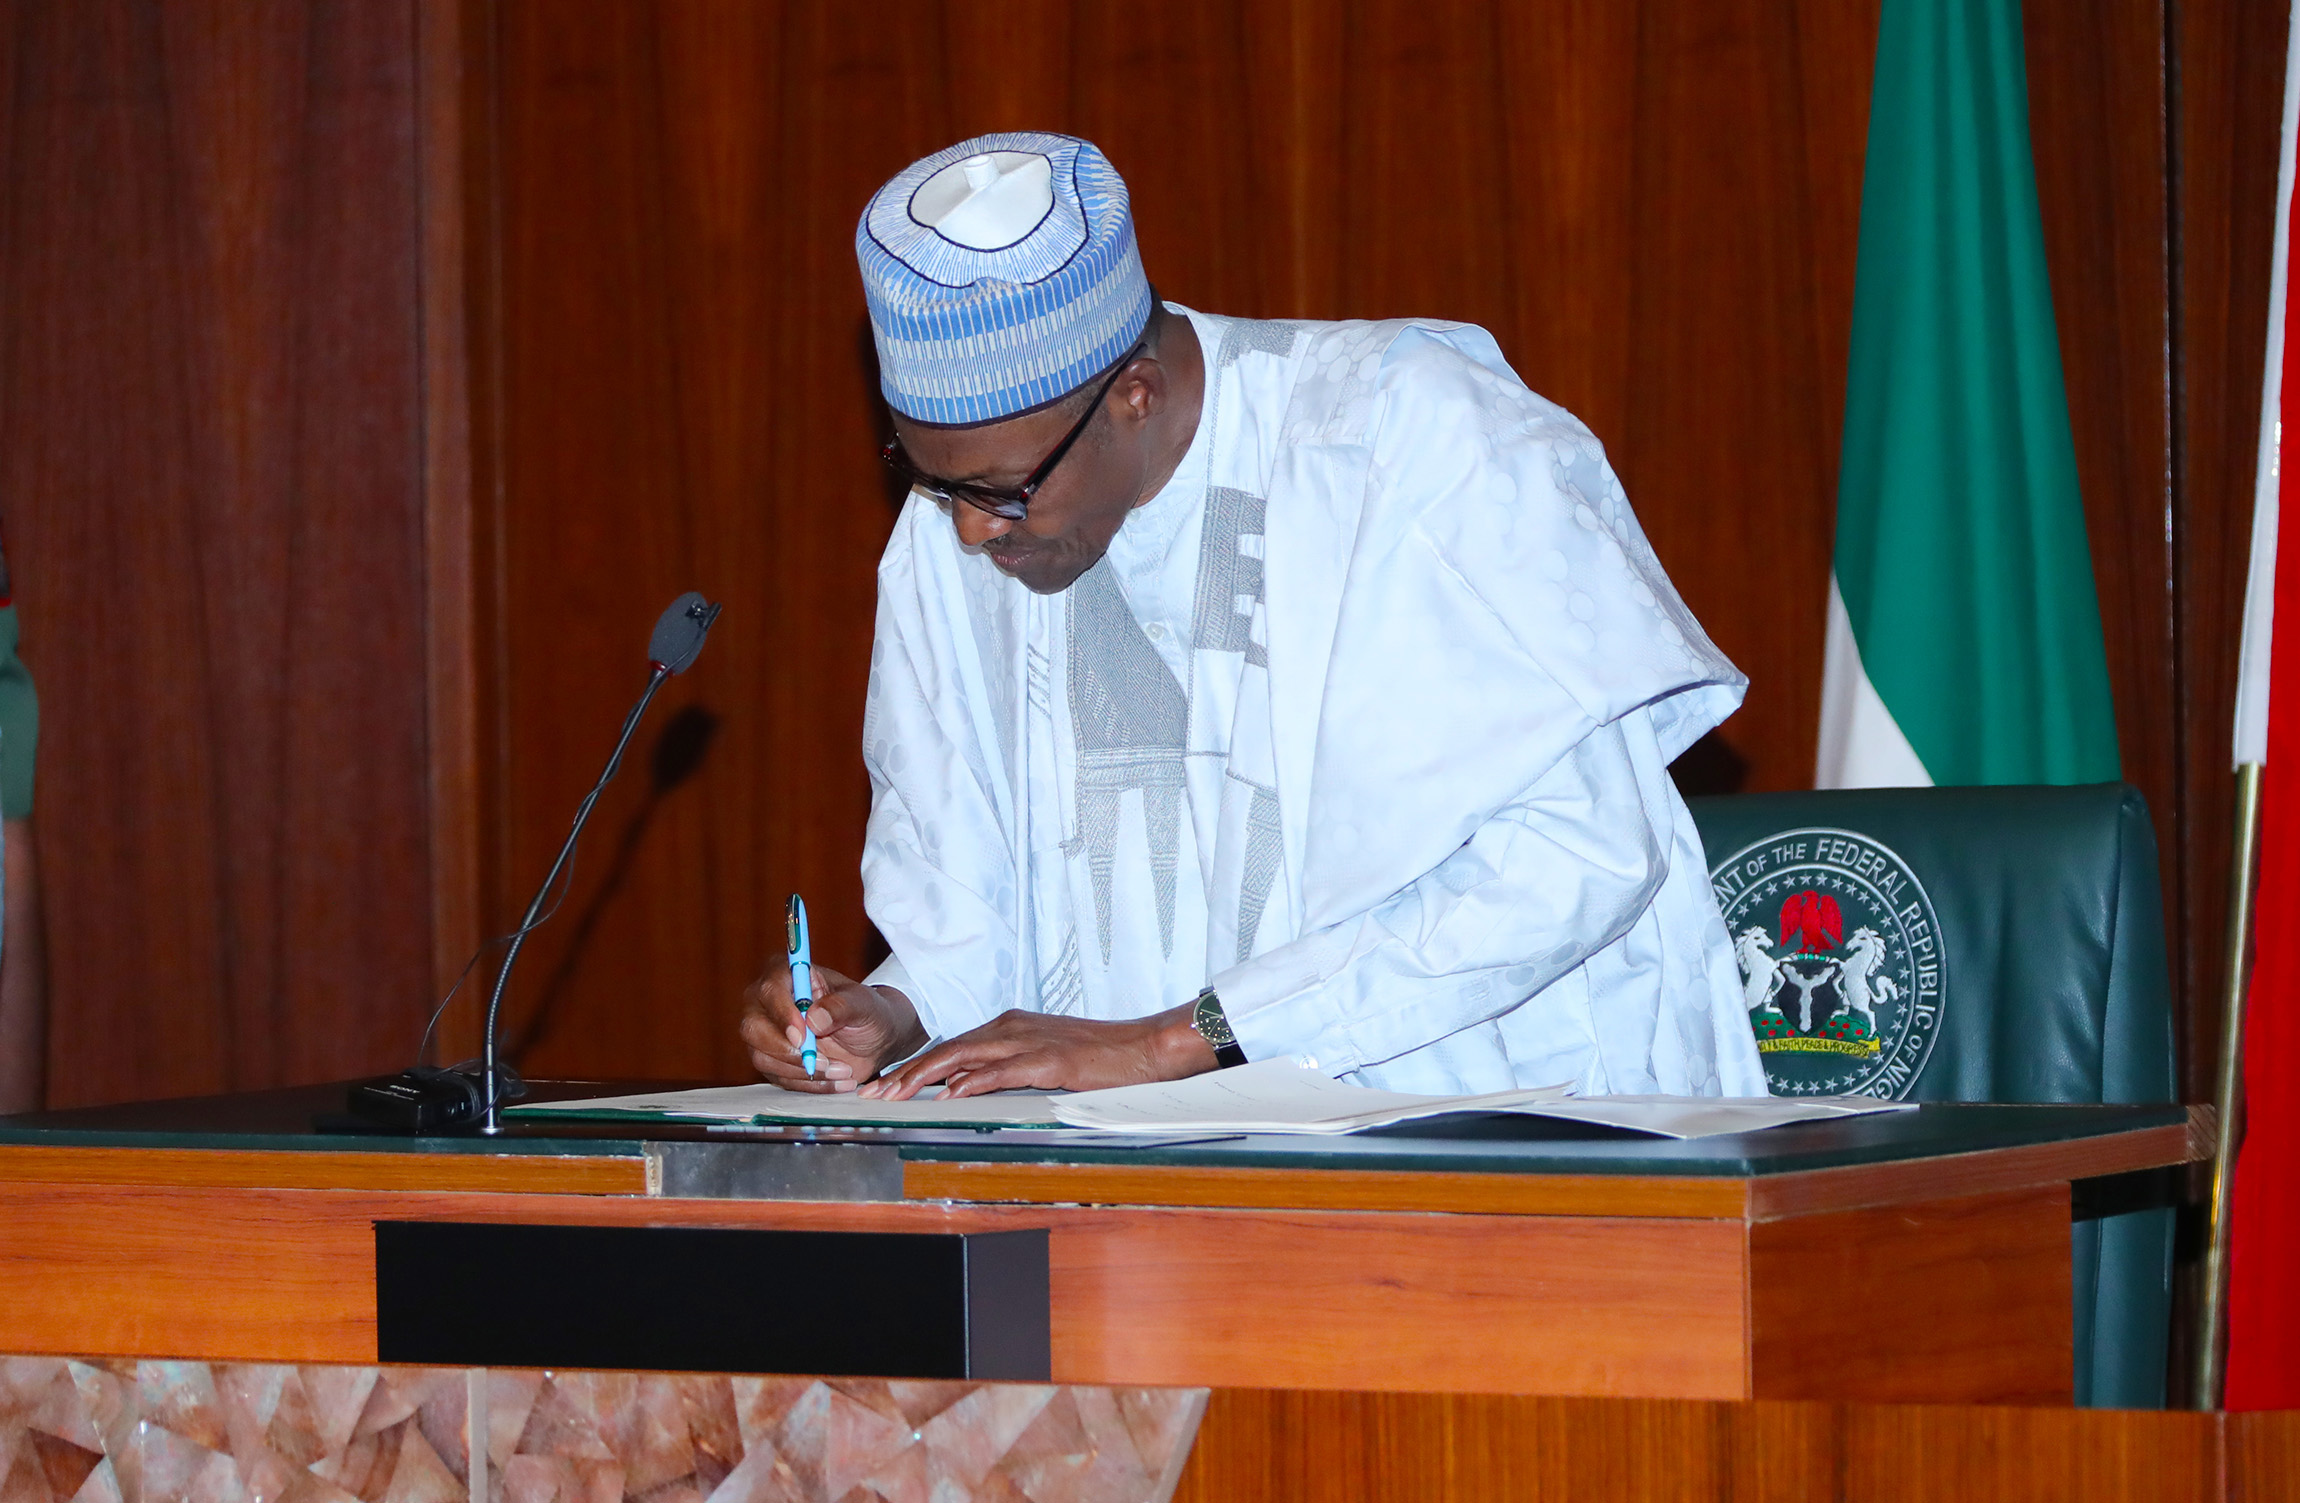 PRESIDENT BUHARI SIGNS EXECUTIVE ORDER 6 PIC 1B. President Muhammadu Buhari signs into Law Executive Order 6 on the Preservation of Suspicious Assets Connected with Corruption held at the Council Chambers State House, Abuja. PHOTO; SUNDAY AGHAEZE. JULY 5 2018.